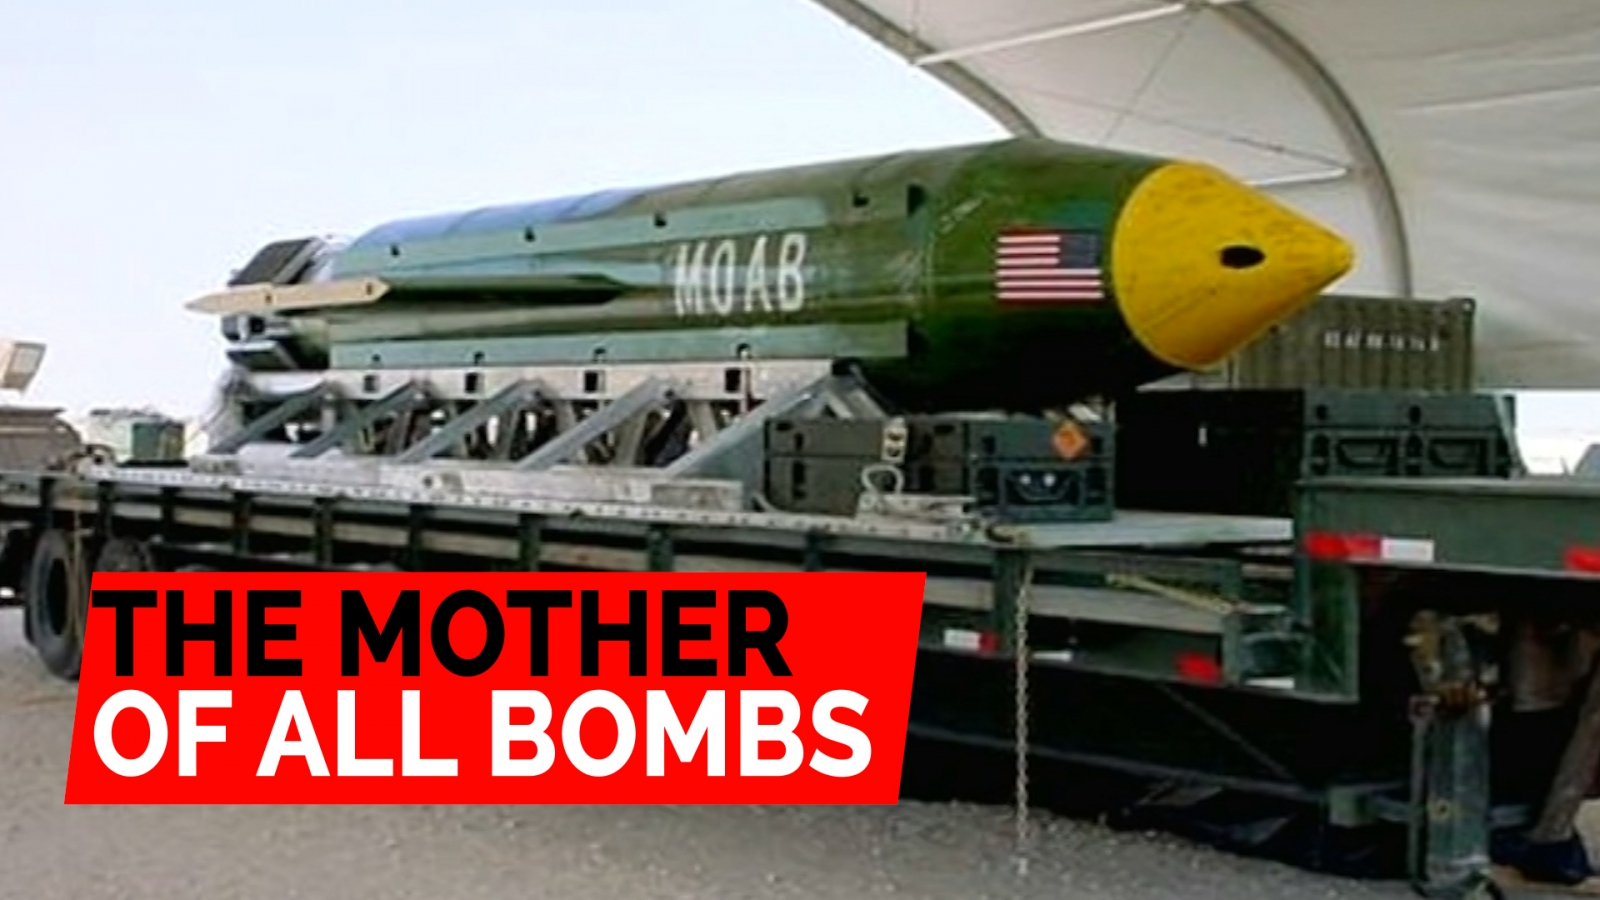 massive-destructive-force-mother-all-bombs-used-bomb-isis-afghanistan